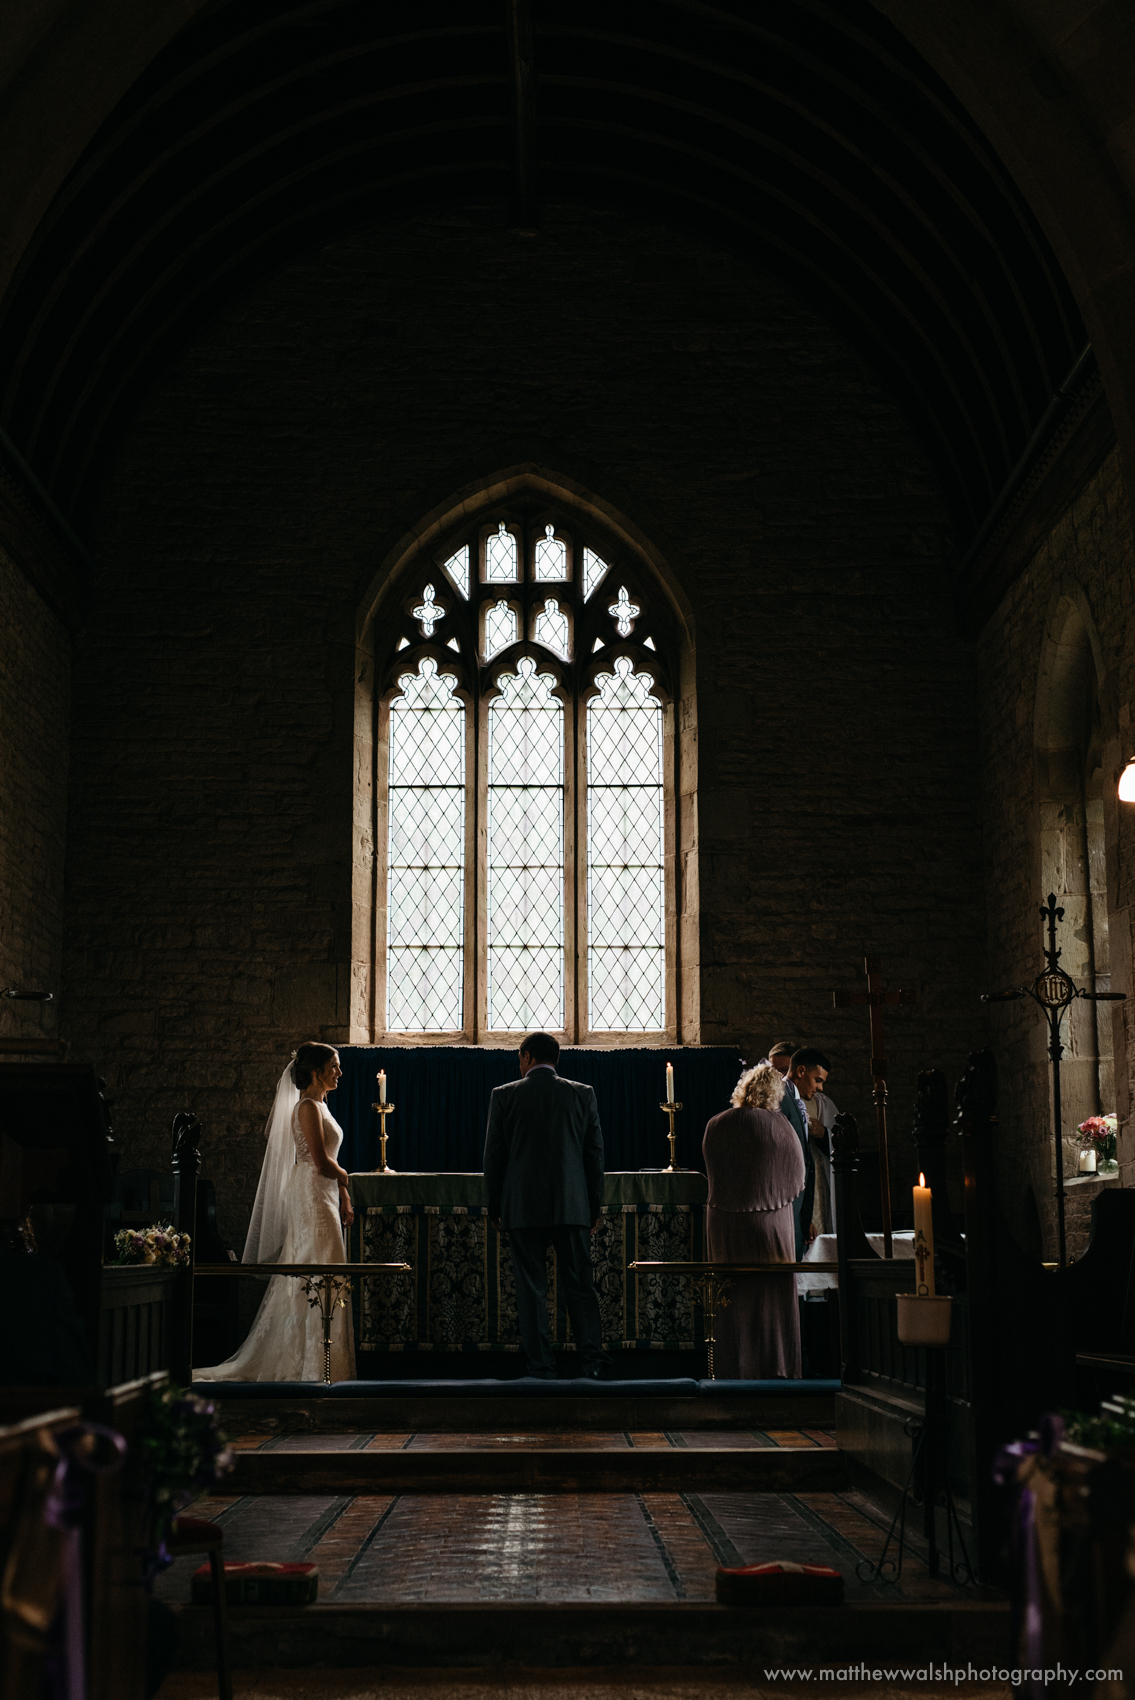 A wonderfully framed photograph of the dark church but a bright window creating a perfect glow around the bride and her dress